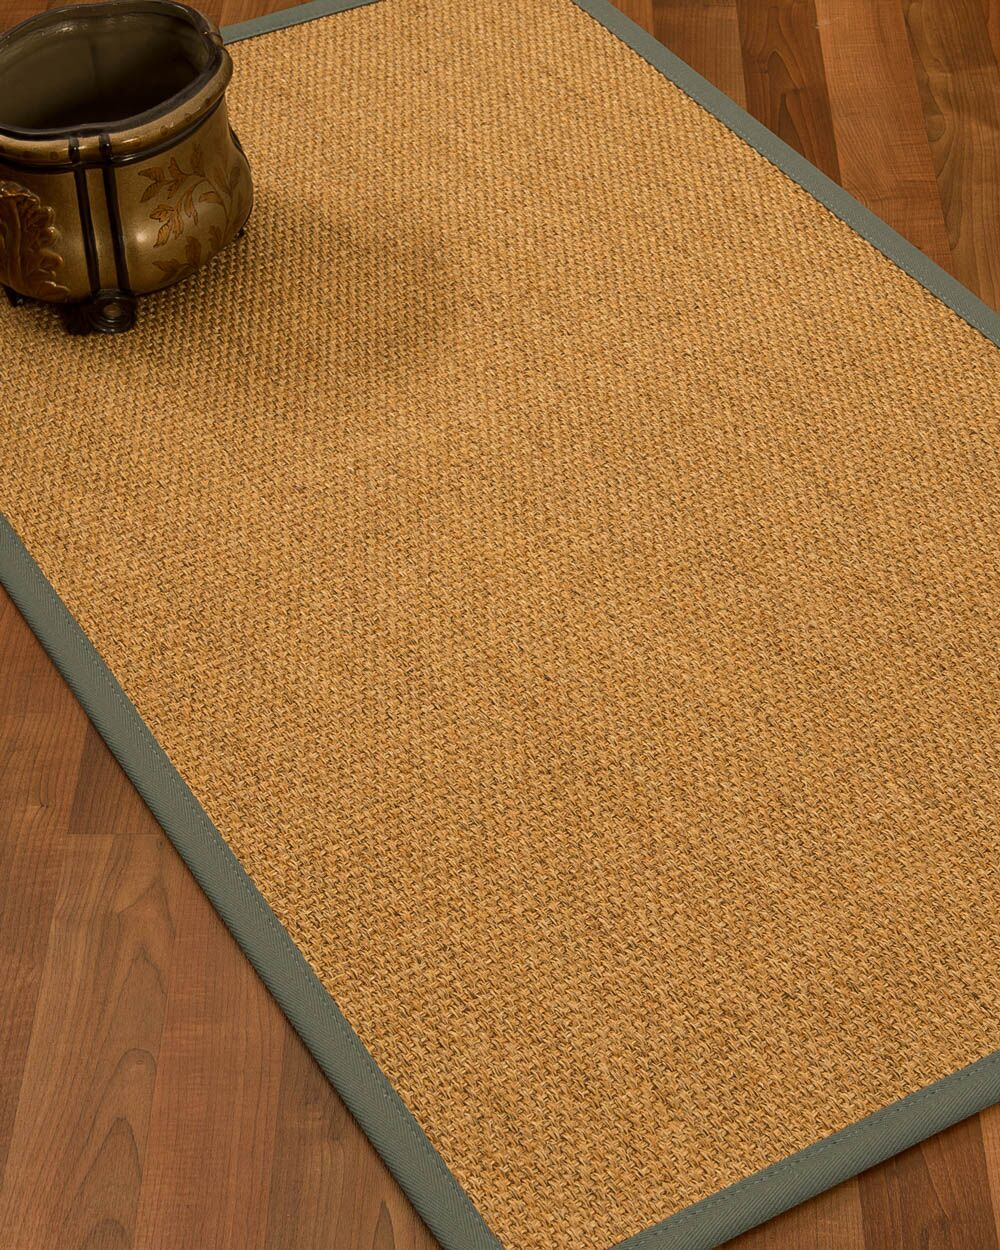 Healey Hand Woven Brown Area Rug Rug Size: Rectangle 5' X 8'